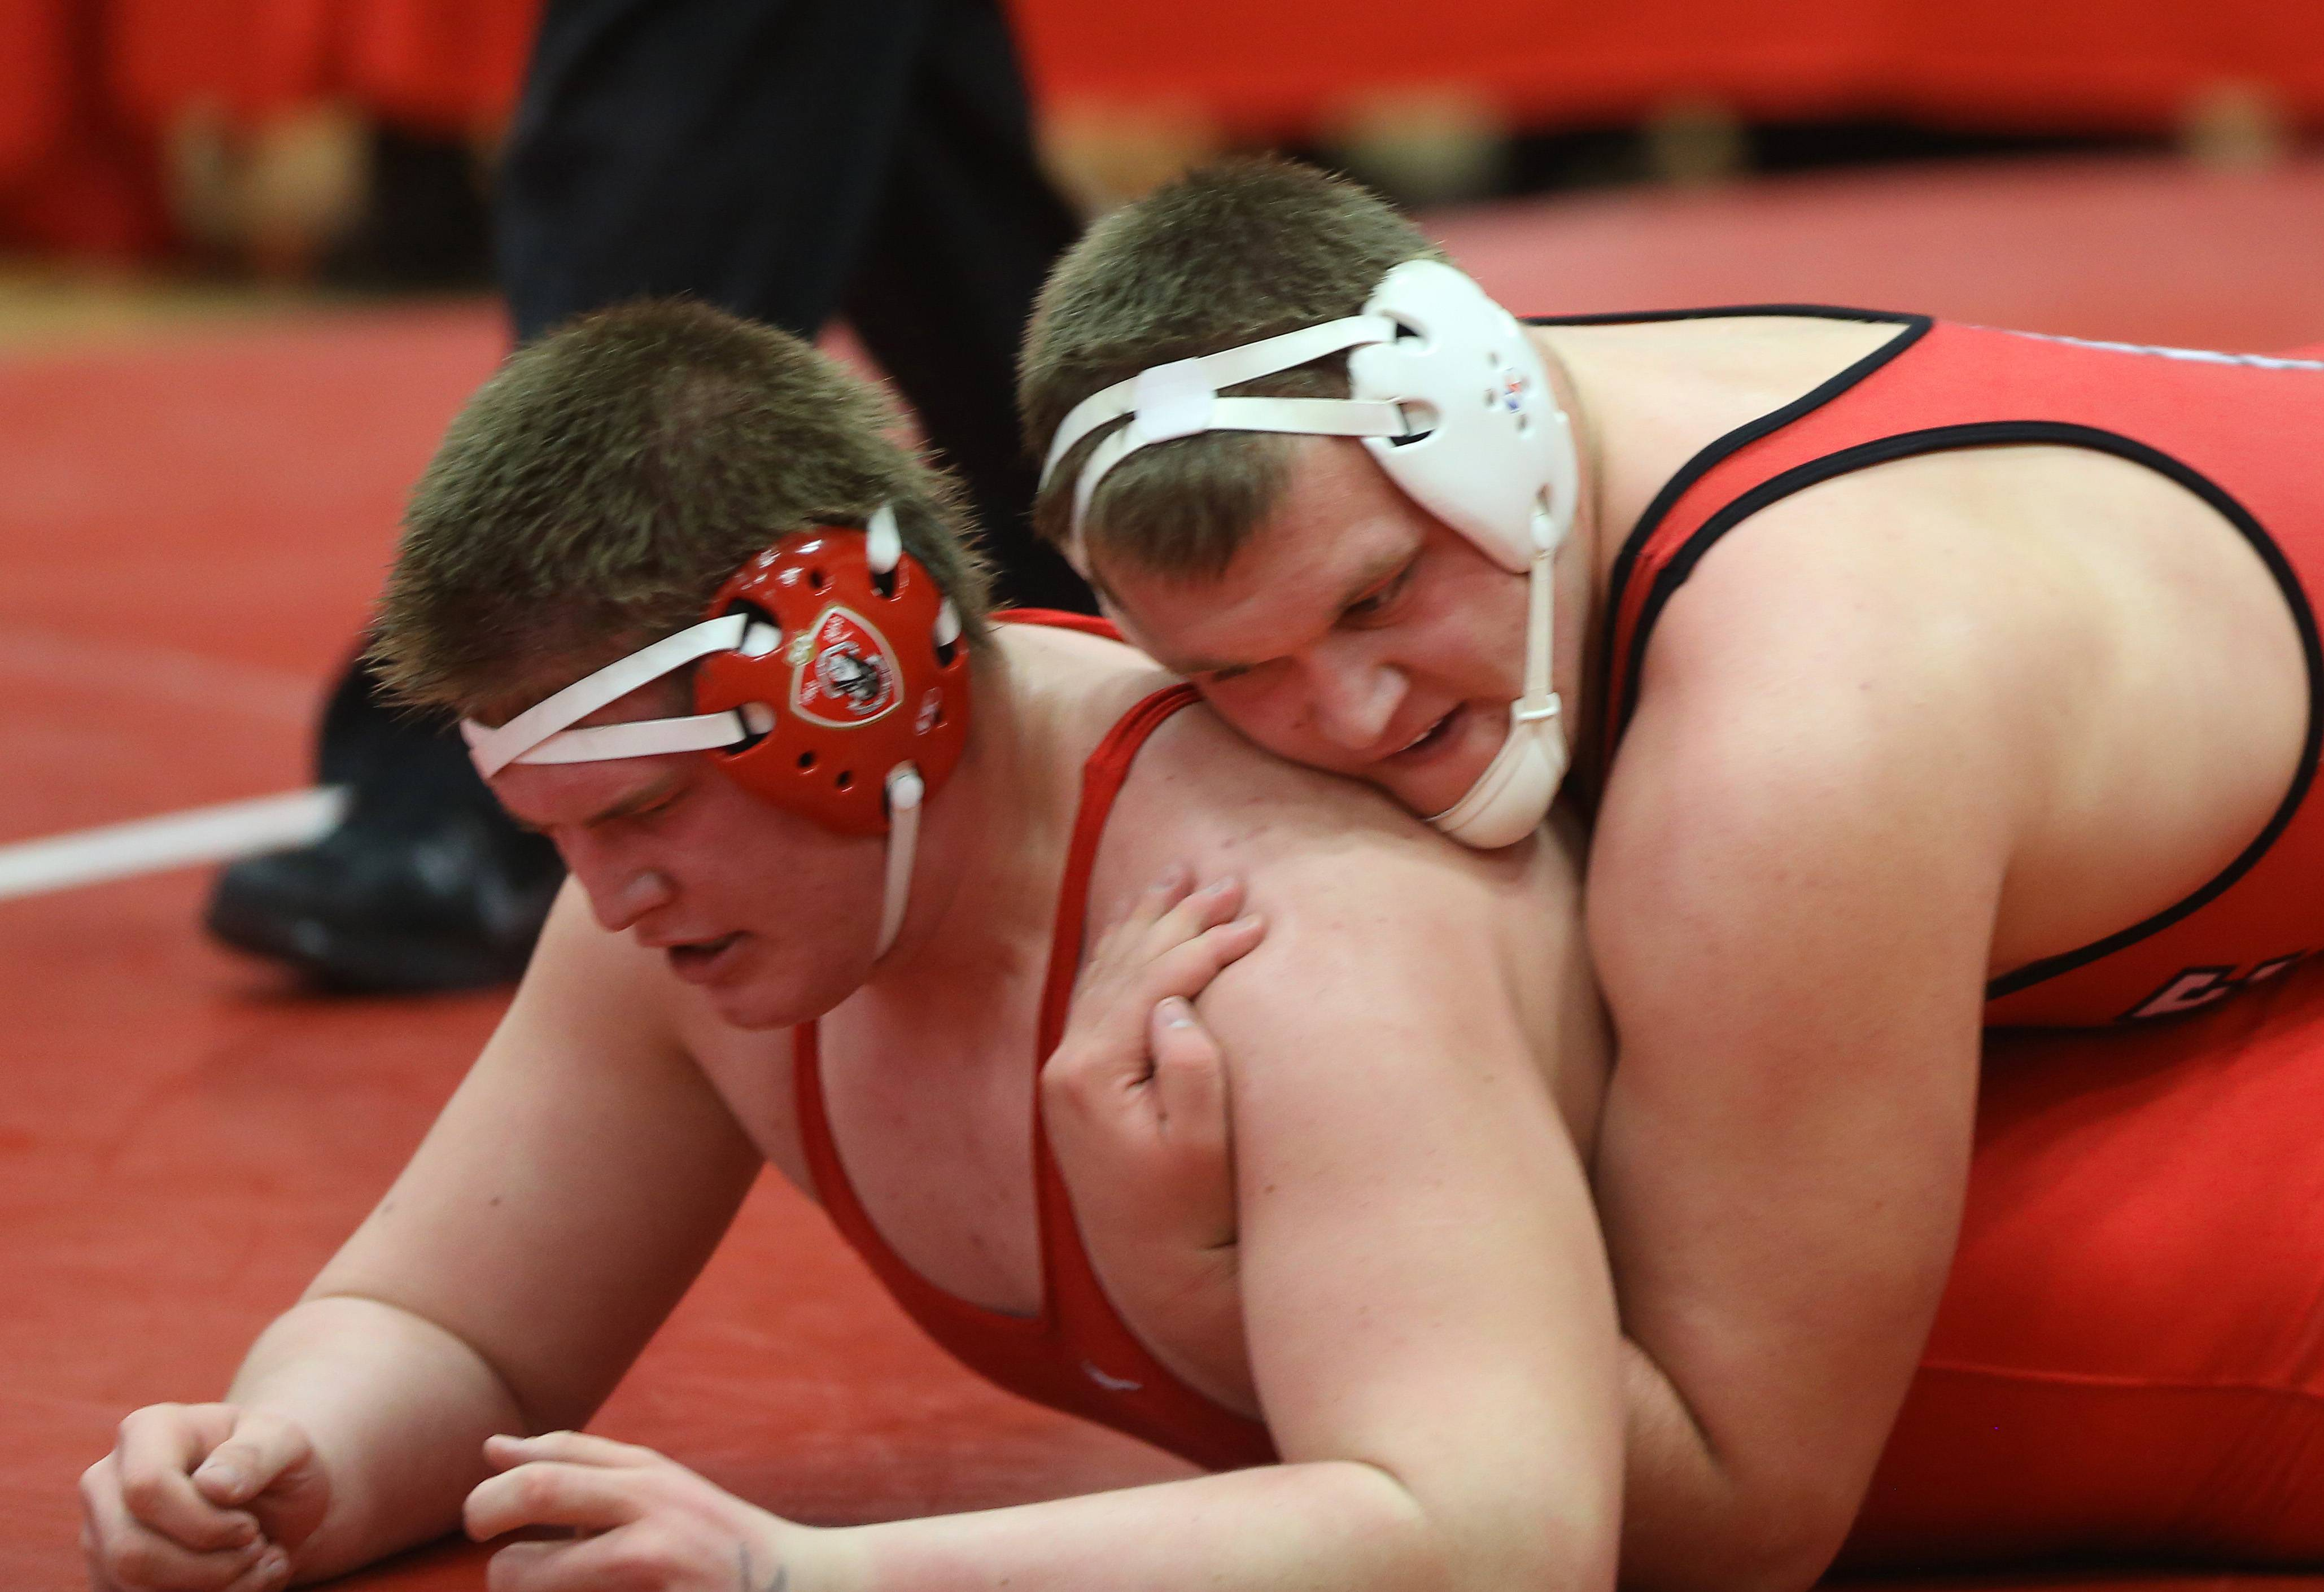 Hinsdale Central's Brian Allen defeats Marist's Jake Ford in the 285 pound class of the 3A Hinsdale Central individual wrestling sectional semifinals.